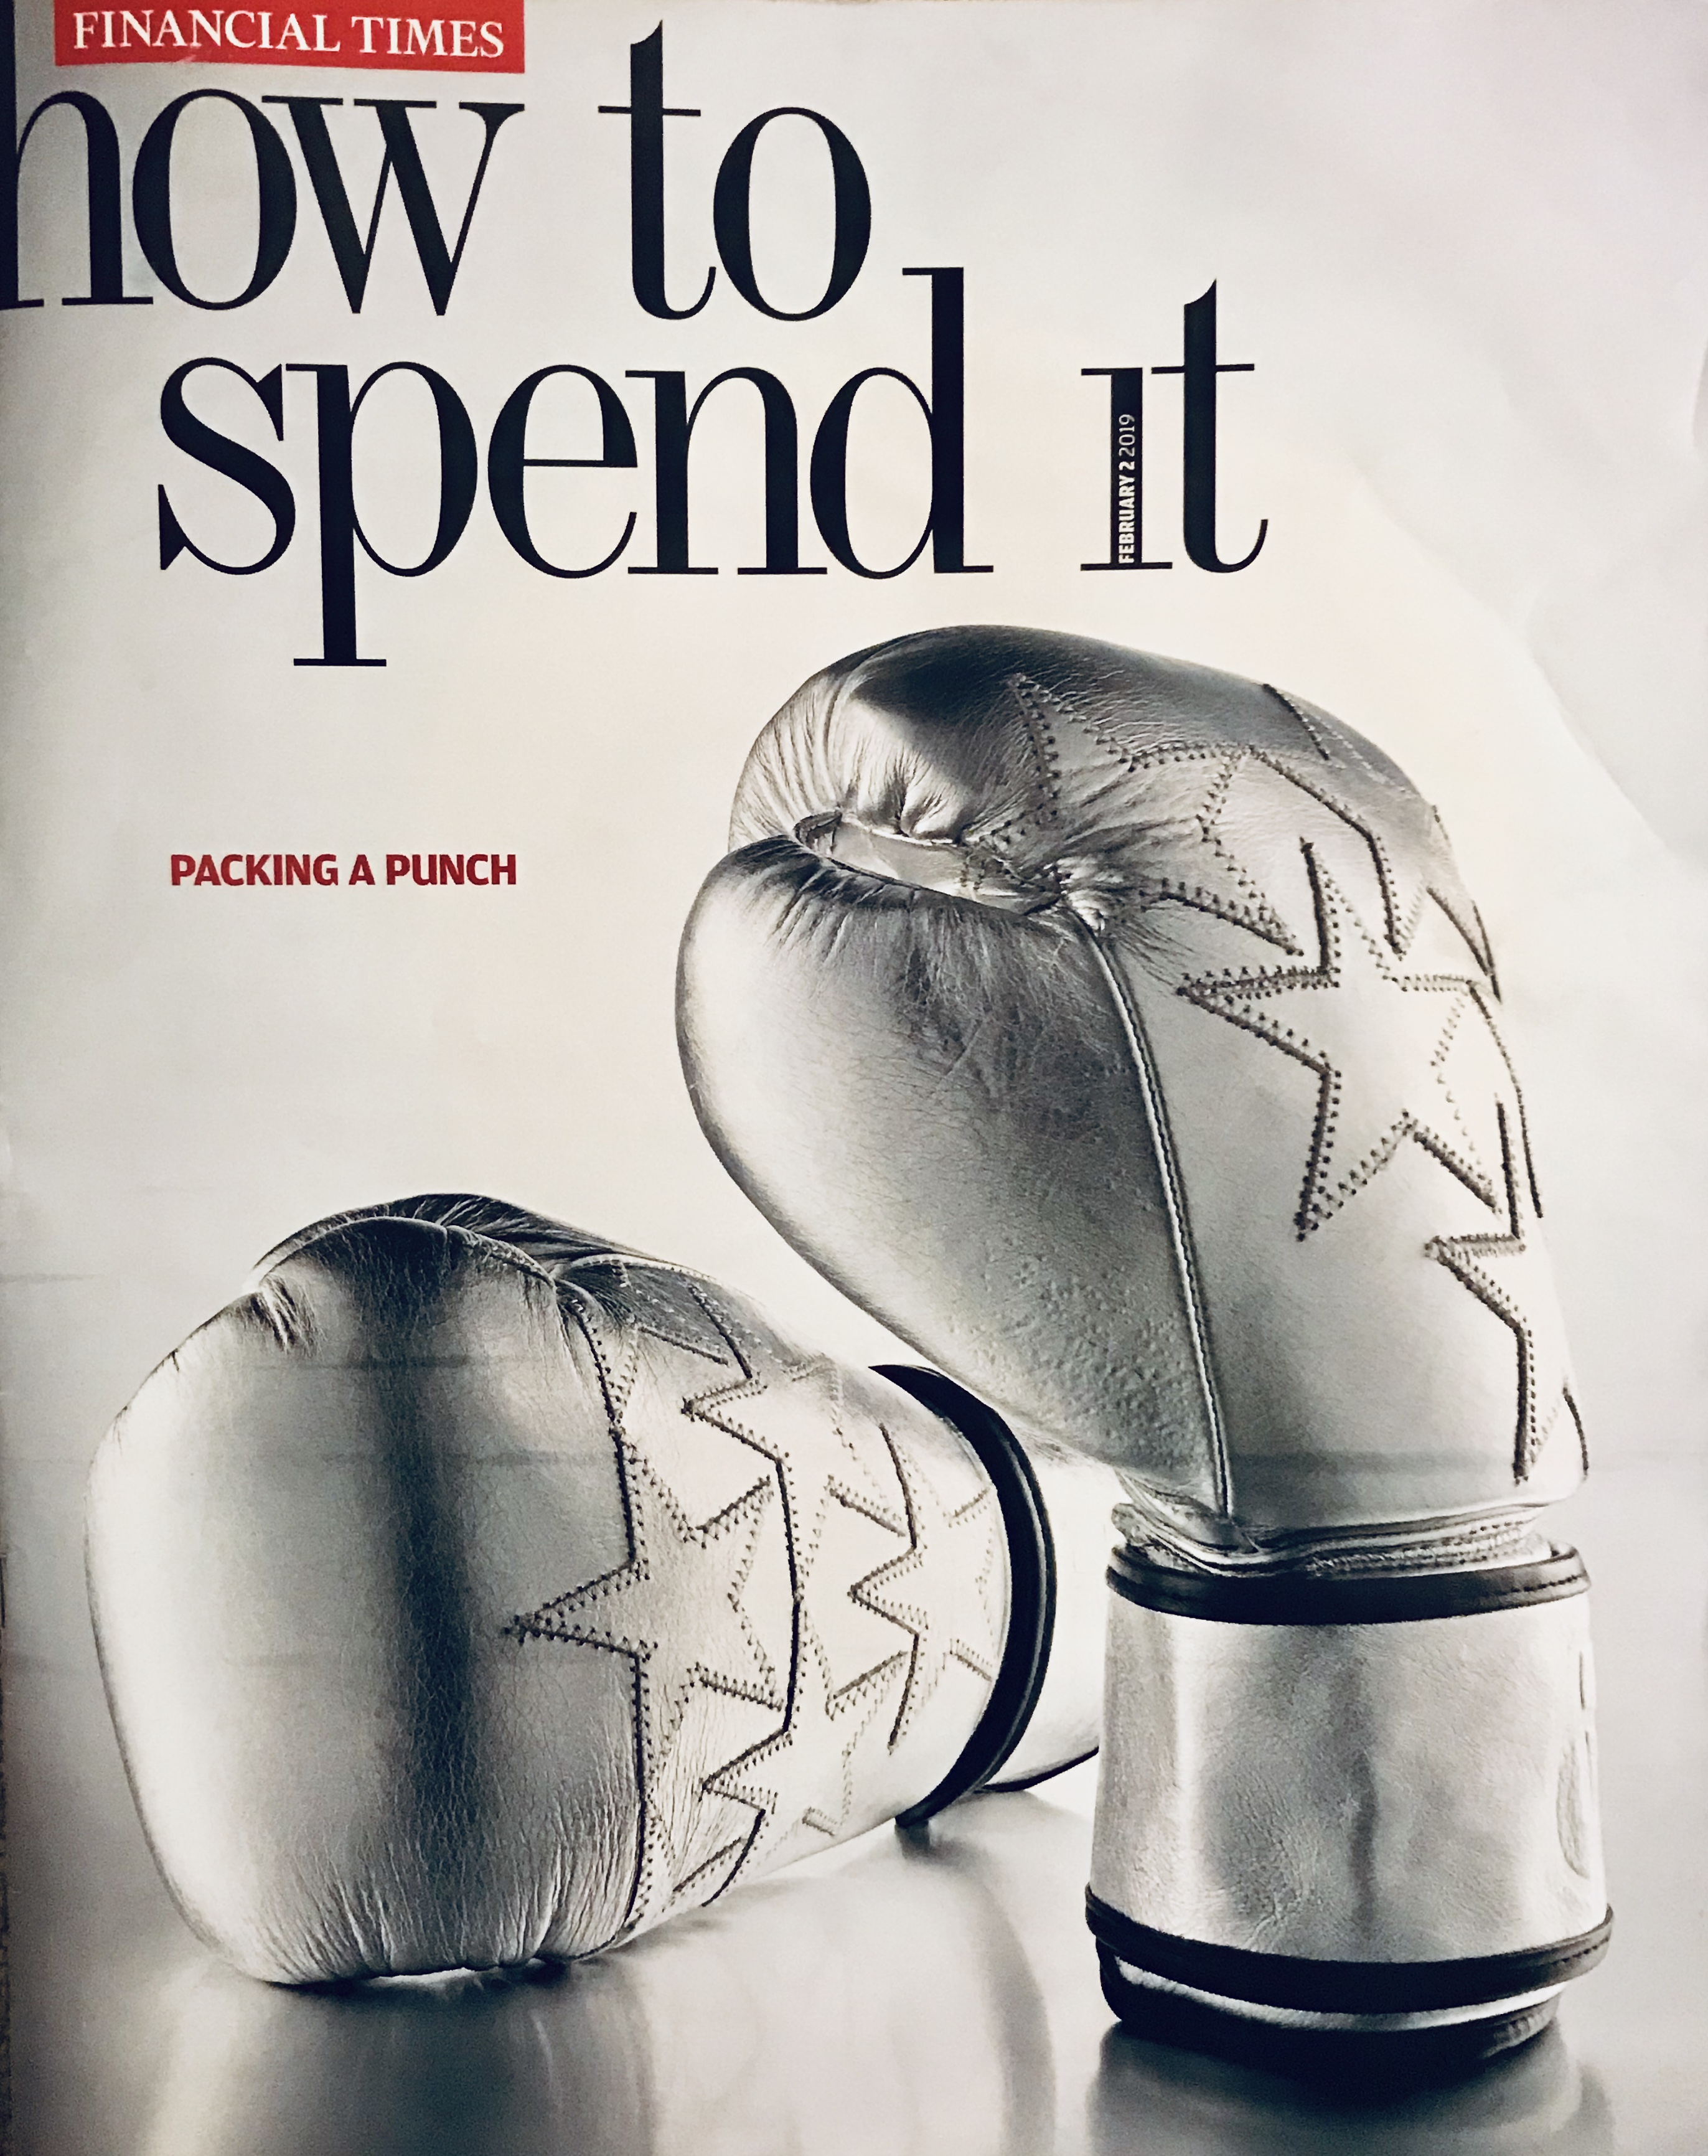 How to Spend It | Financial Times Weekend